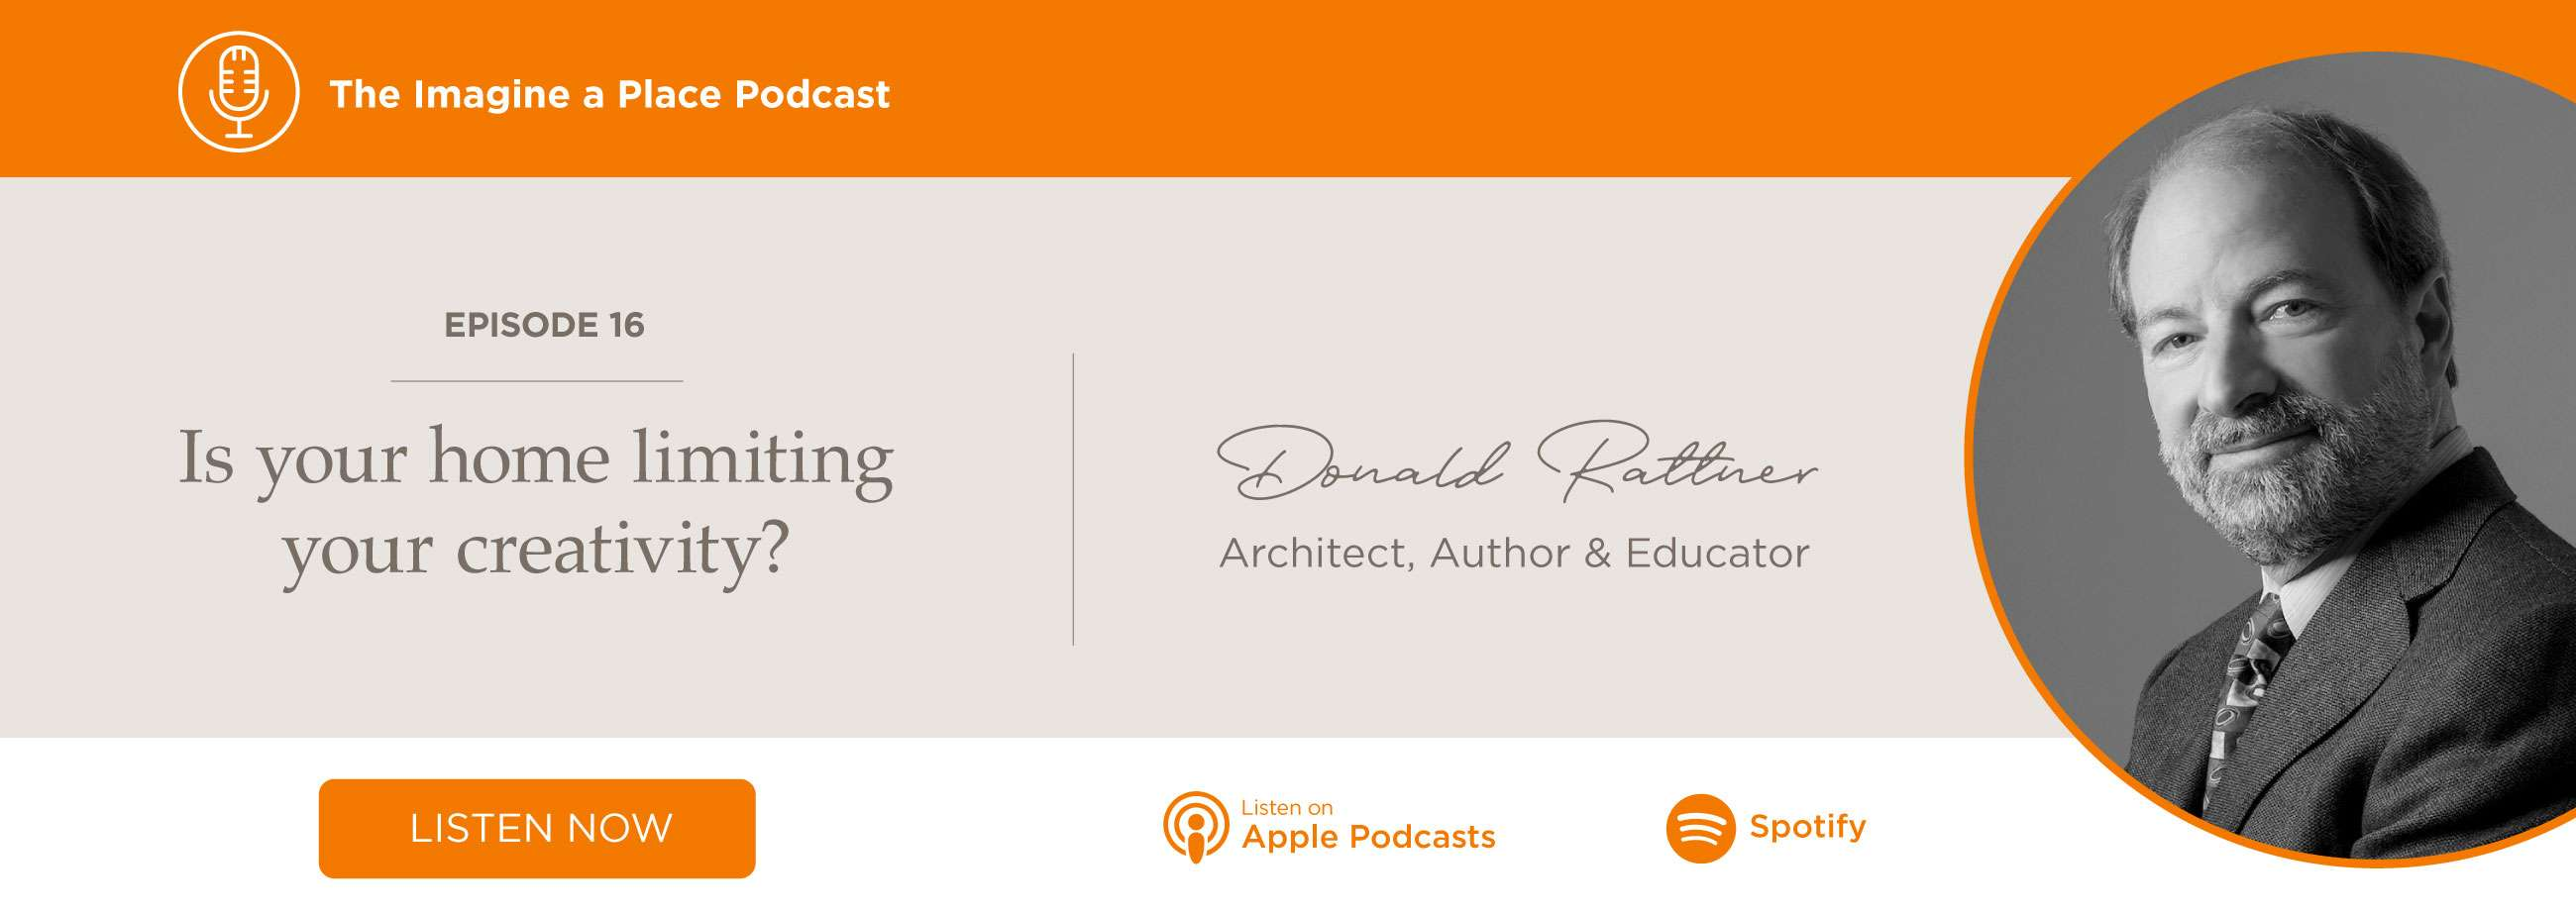 Donald Rattner (My Creative Space): Is your home limiting your creativity?